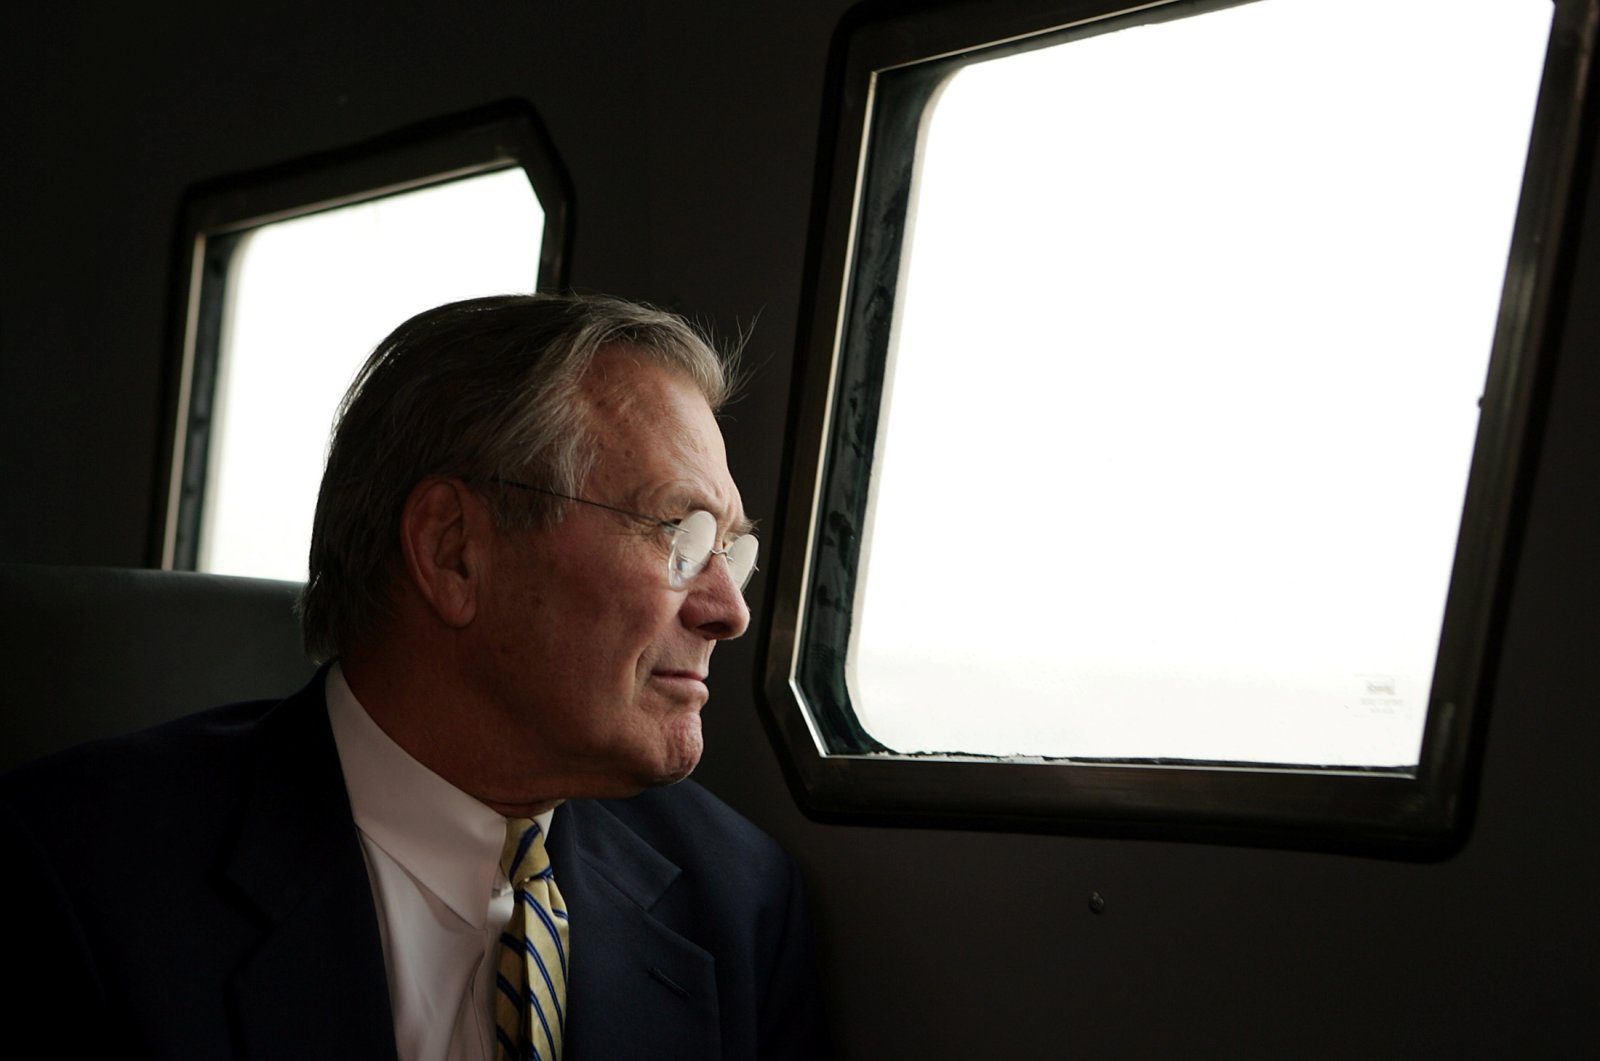 U.S. Secretary of Defense Donald Rumsfeld looks through a window of an armored vehicle while touring Abu Ghraib prison outside Baghdad, Iraq, May 13, 2004. (Reuters Photo)